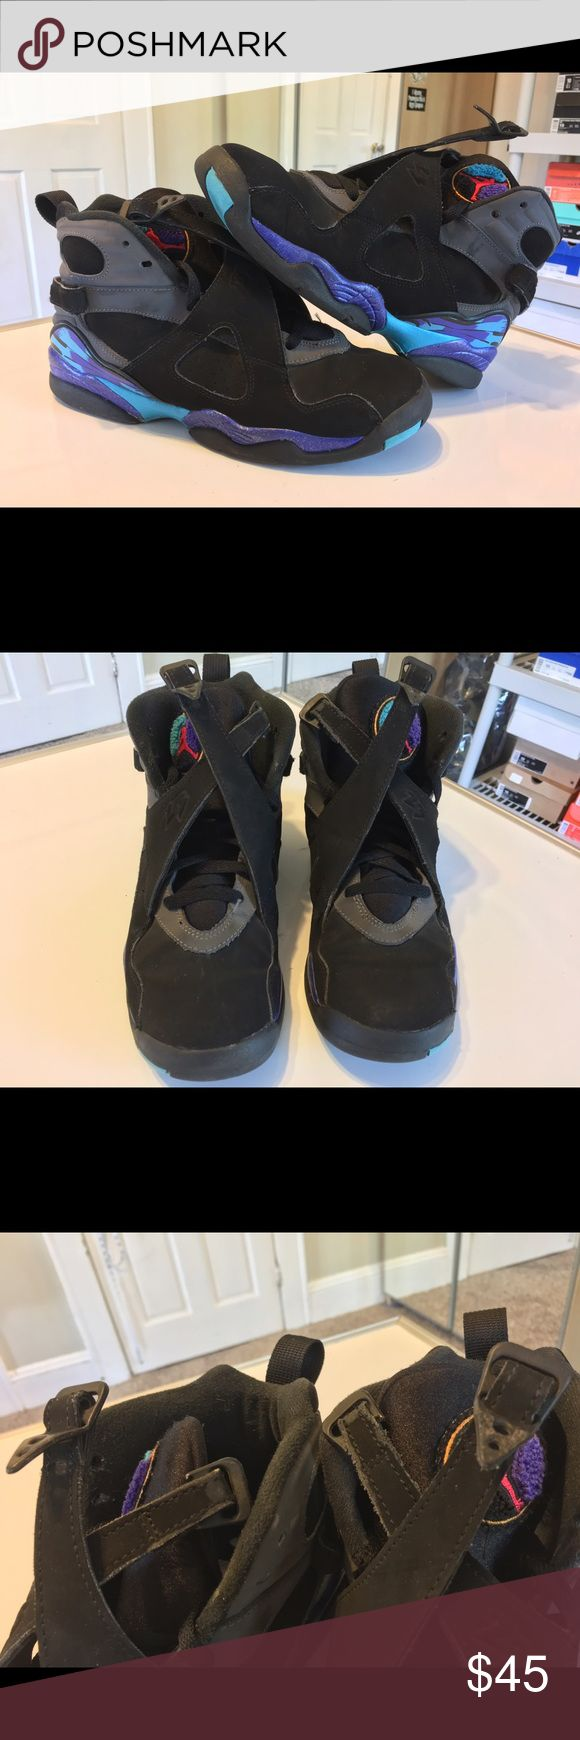 Kids Air Jordan 2013 retro aqua 8s size 7Y Kids Air Jordan 2013 retro aqua 8s    Size: 7y    Preowned condition flaws include scuffs/scratches, the plastic tip are a little broken on straps (shown in pics), creasing,paint chipping and some heel drag!   No box!    If you have any questions please message me thanks!    Check out my other listings! Jordan Shoes Sneakers